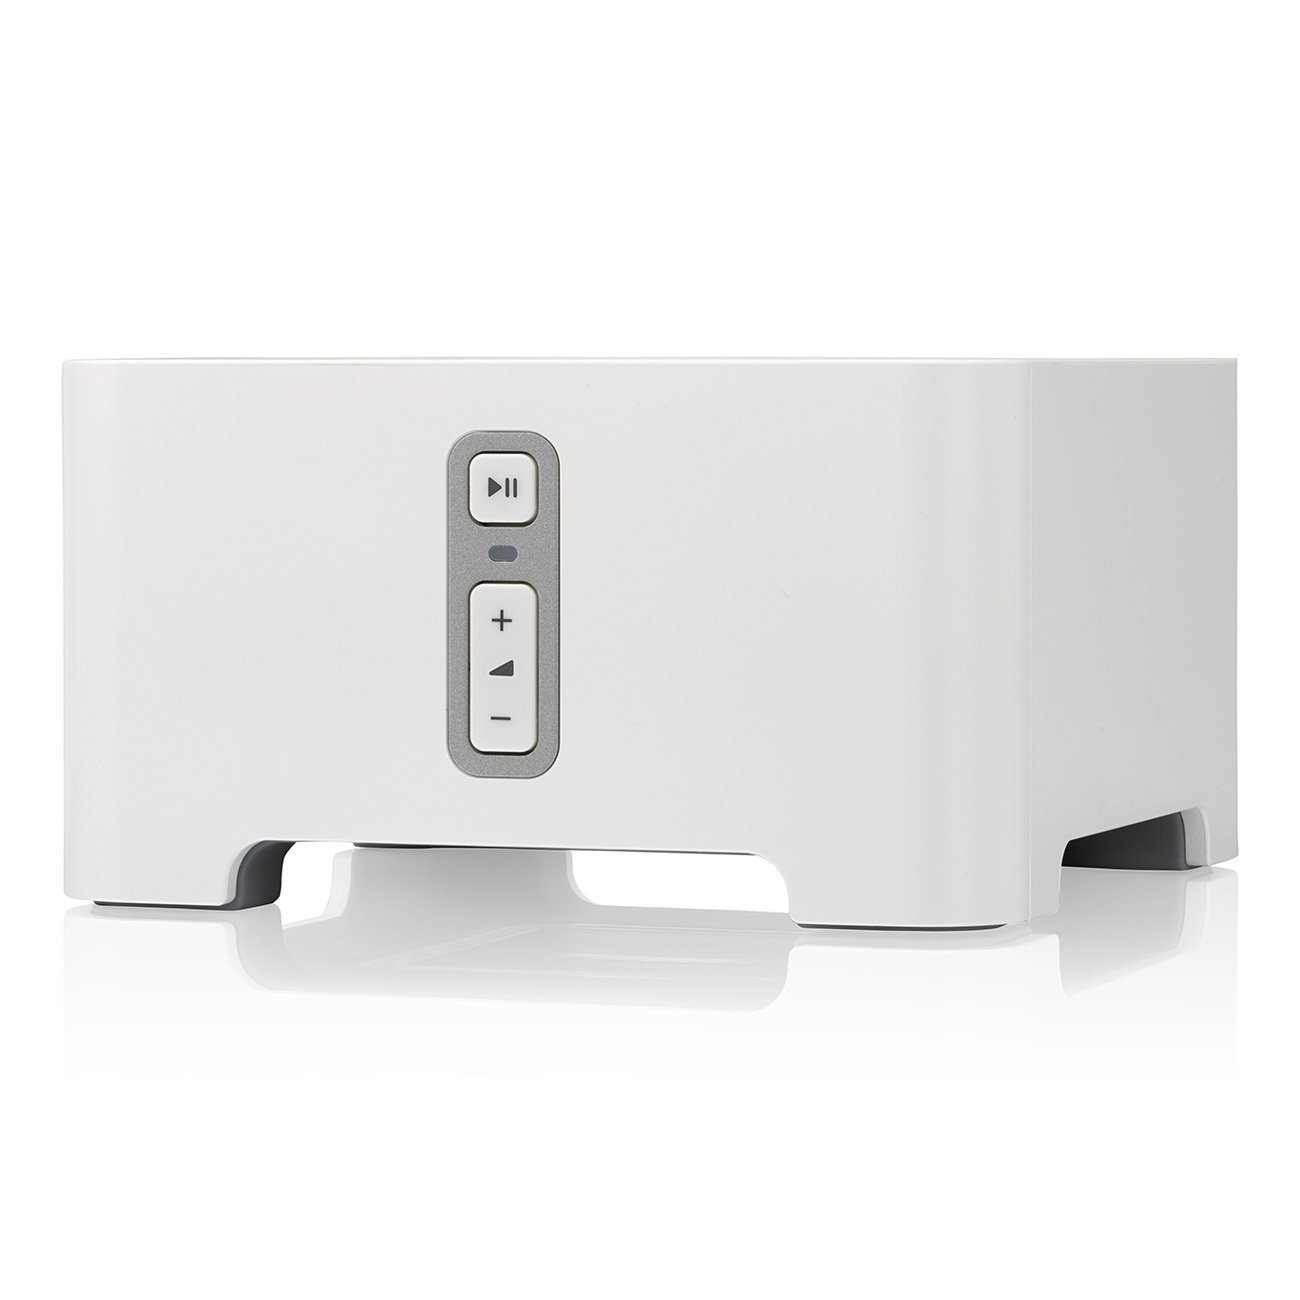 Sonos Connect - Wireless Home Audio Receiver Component for Streaming Music - White by Sonos